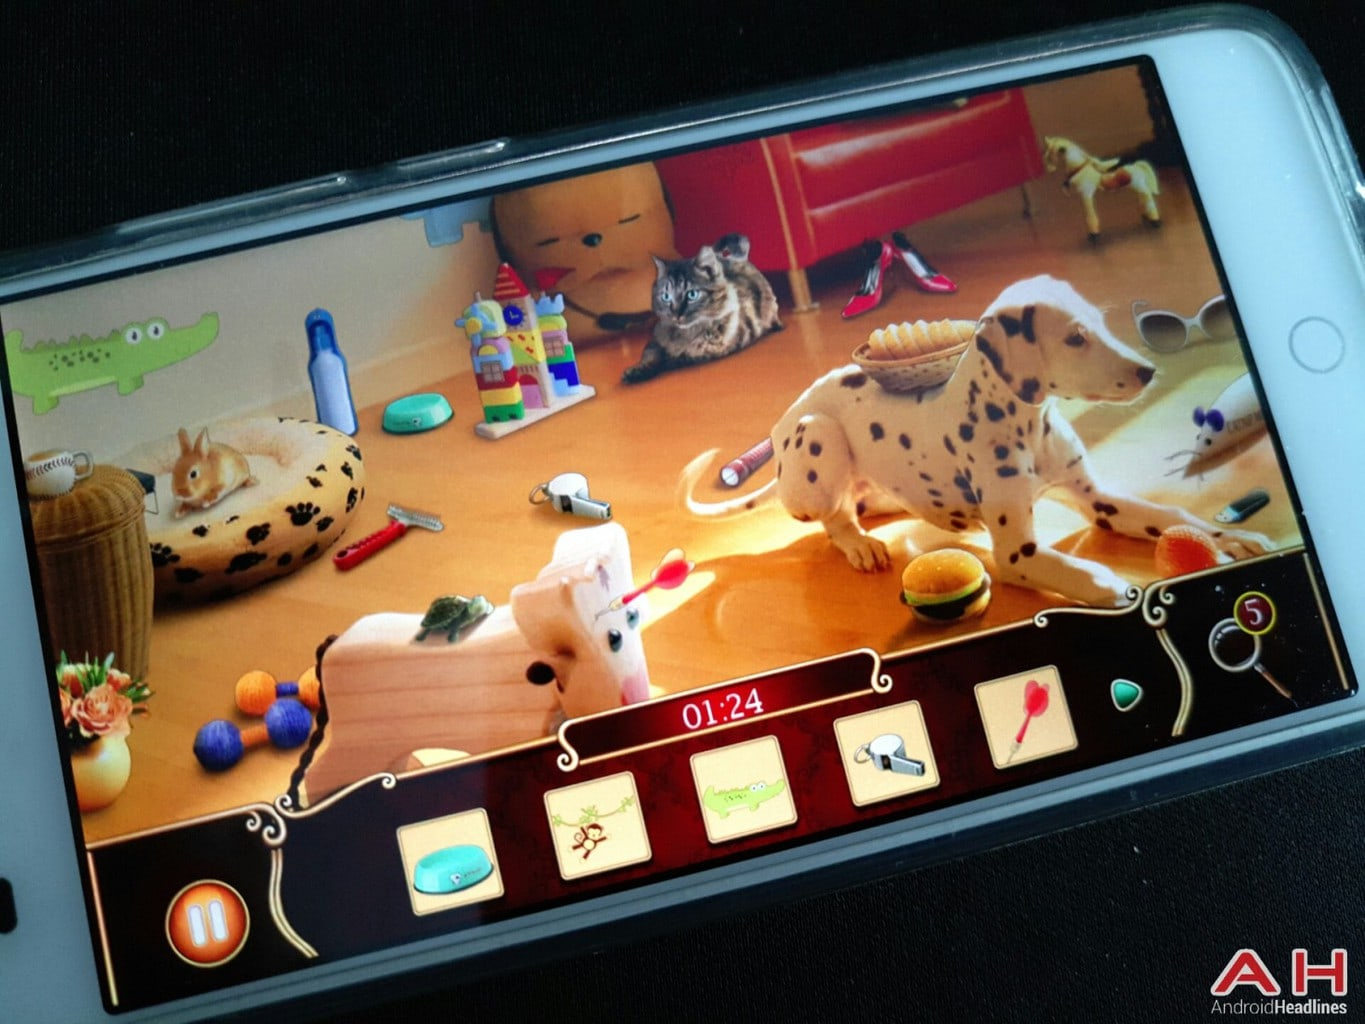 Petfinder Puppy and Kitten Game Brings Puppies and Kittens to